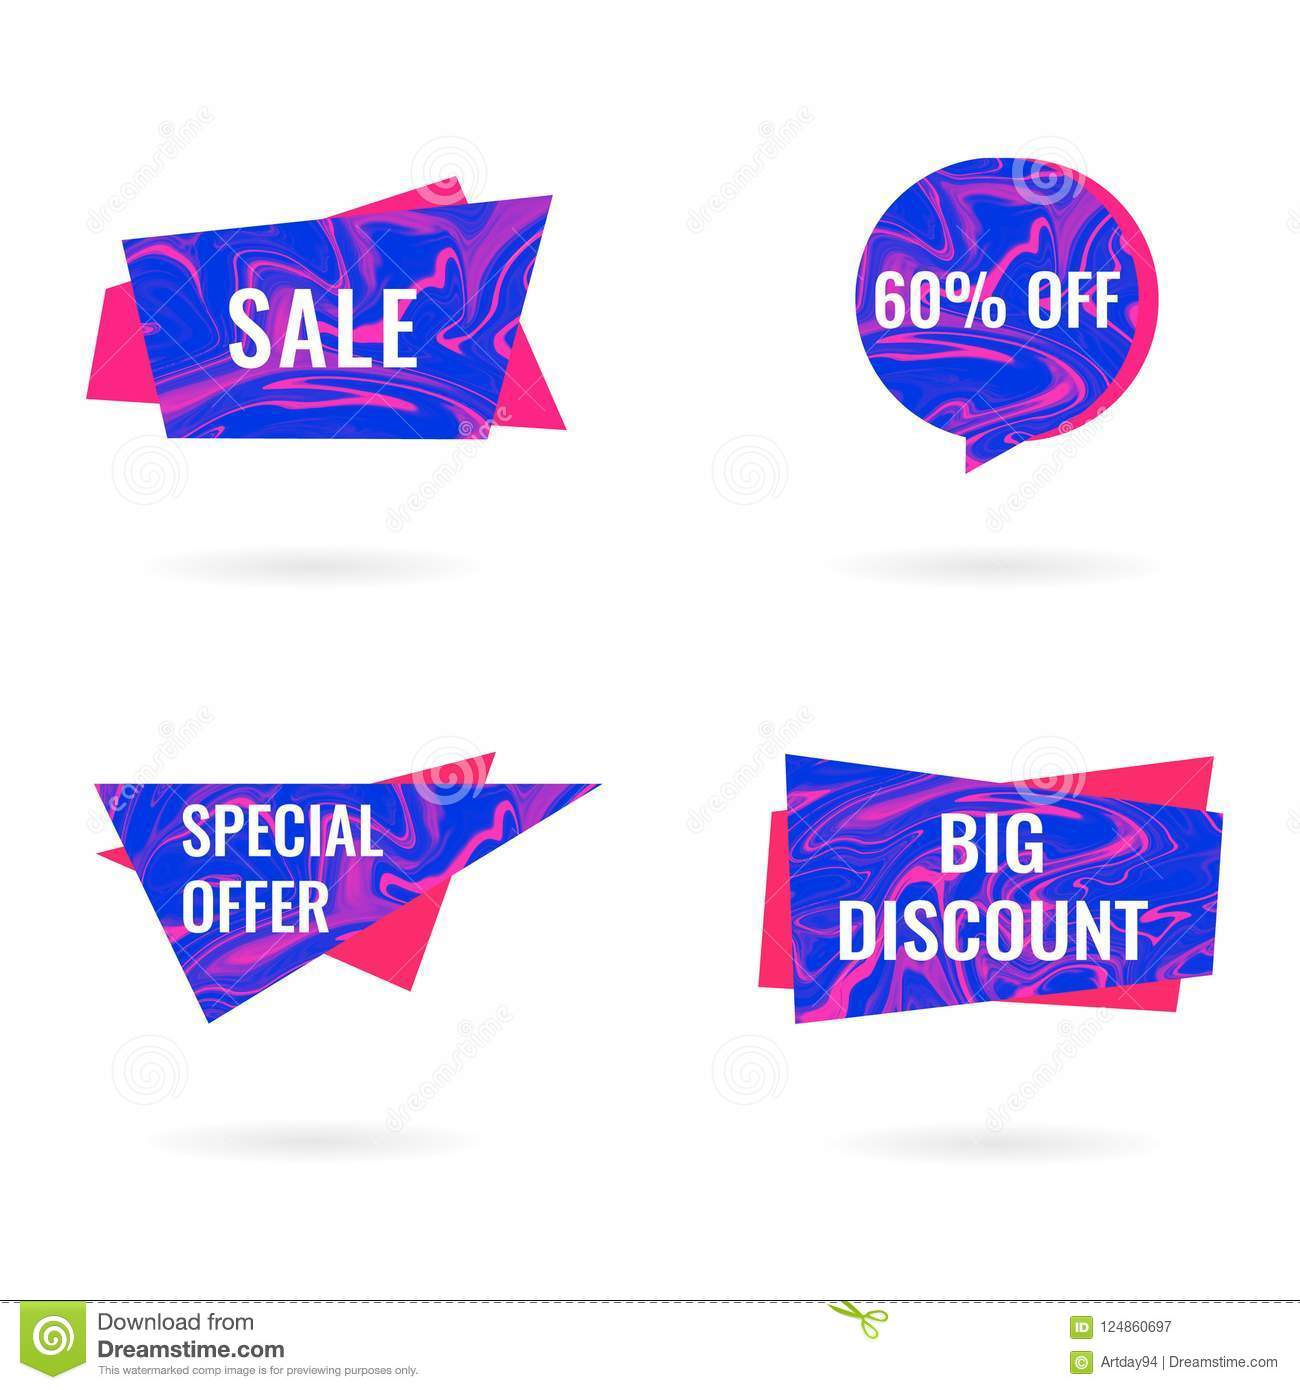 Sale isolated banners set. Big Sale and Discount offer stickers, tags, labels or paper banners set on white background. Blue and